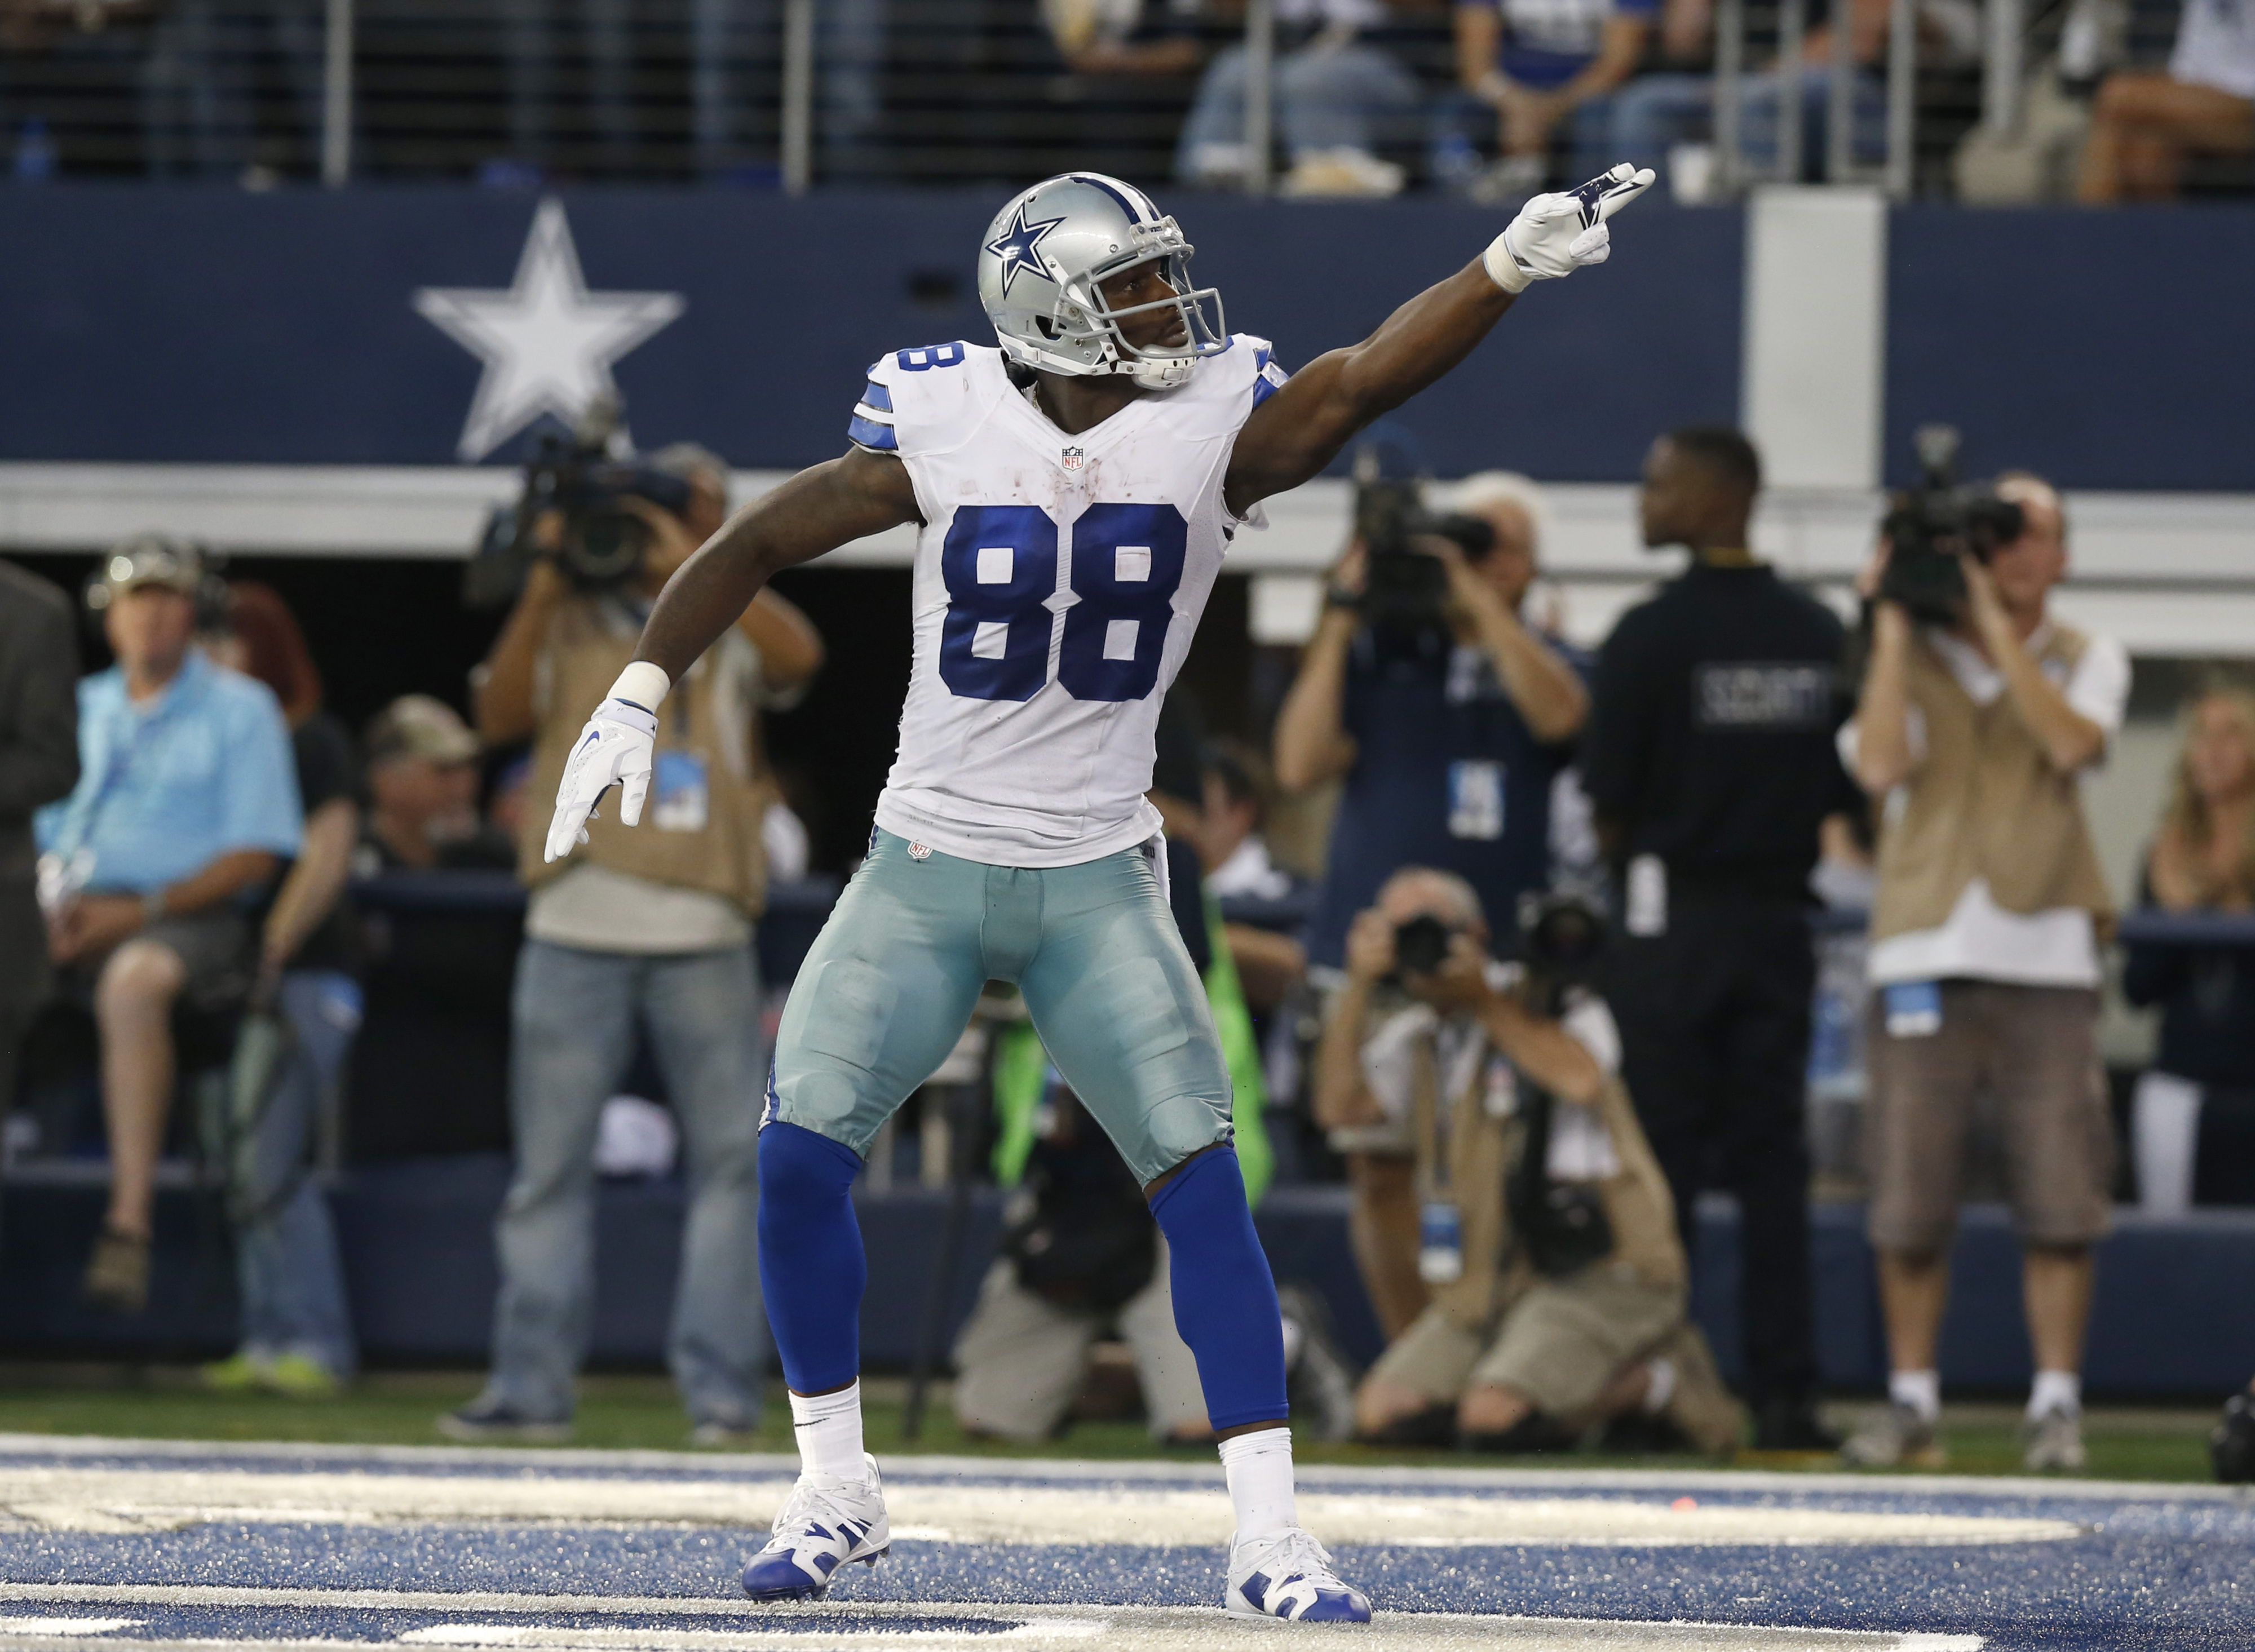 It may be all Dez all night for the Cowboys tonight against division rival Washington